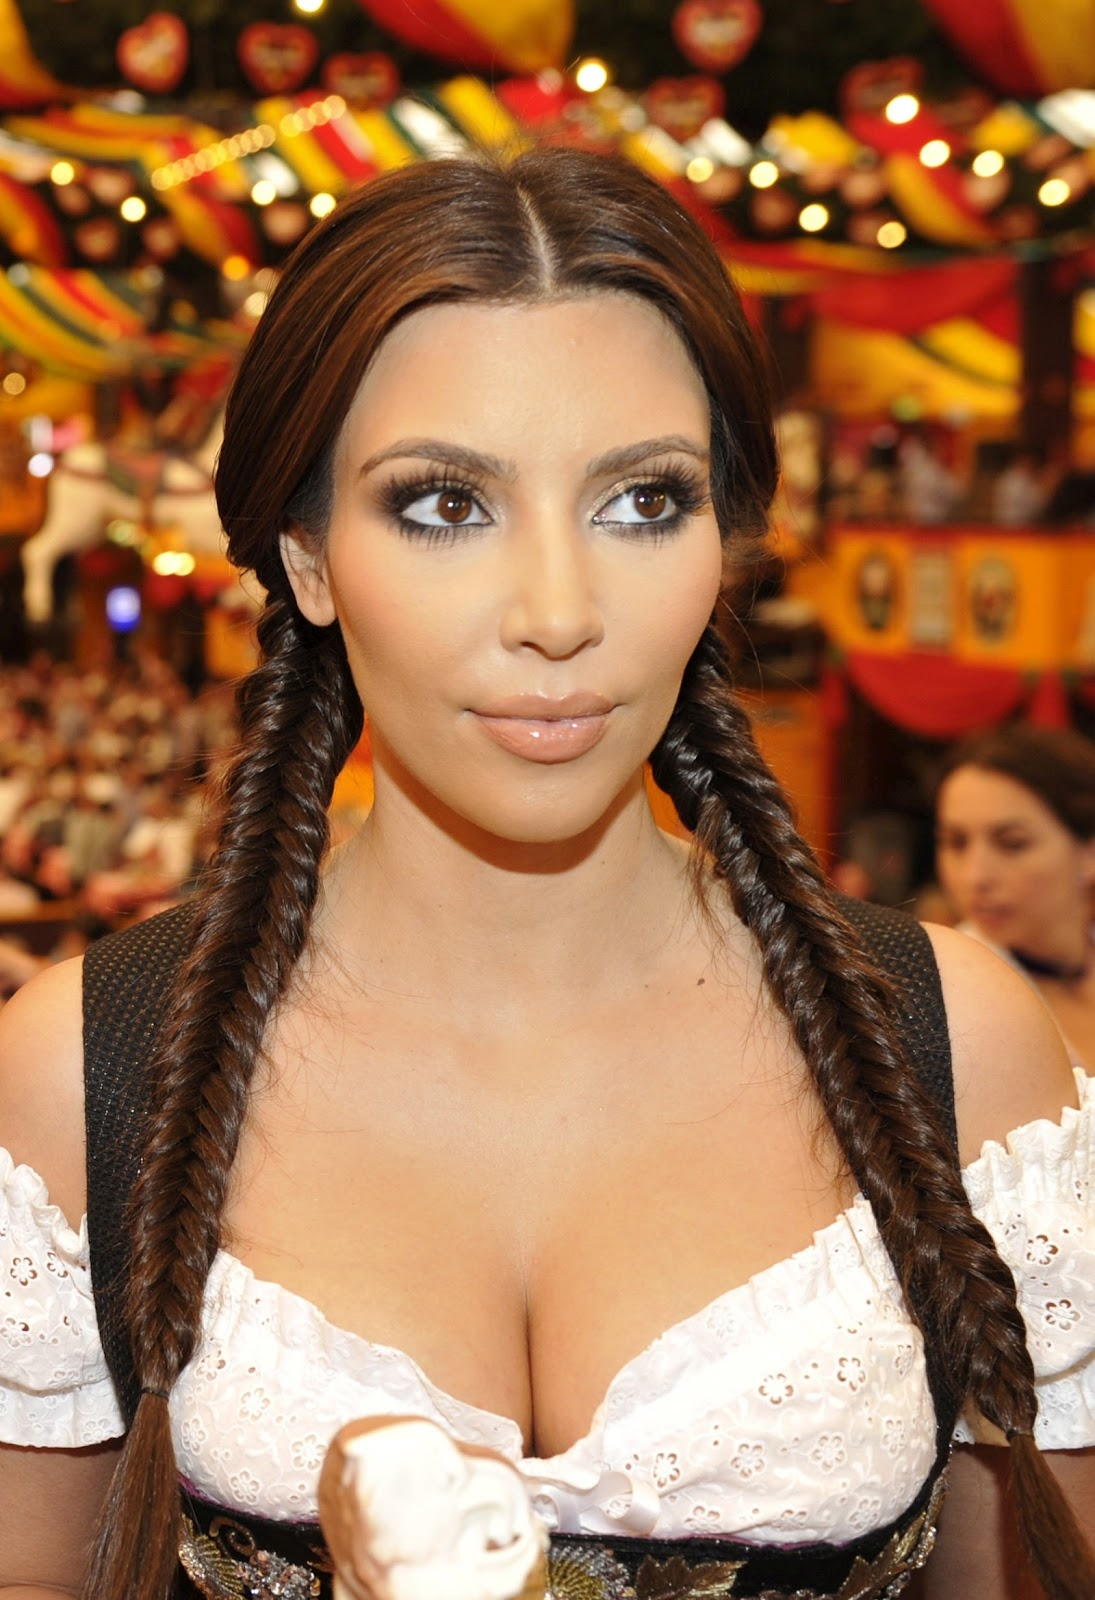 [Kim Kardashian in Munich at Oktoberfest hottest cleavage[3].jpg]